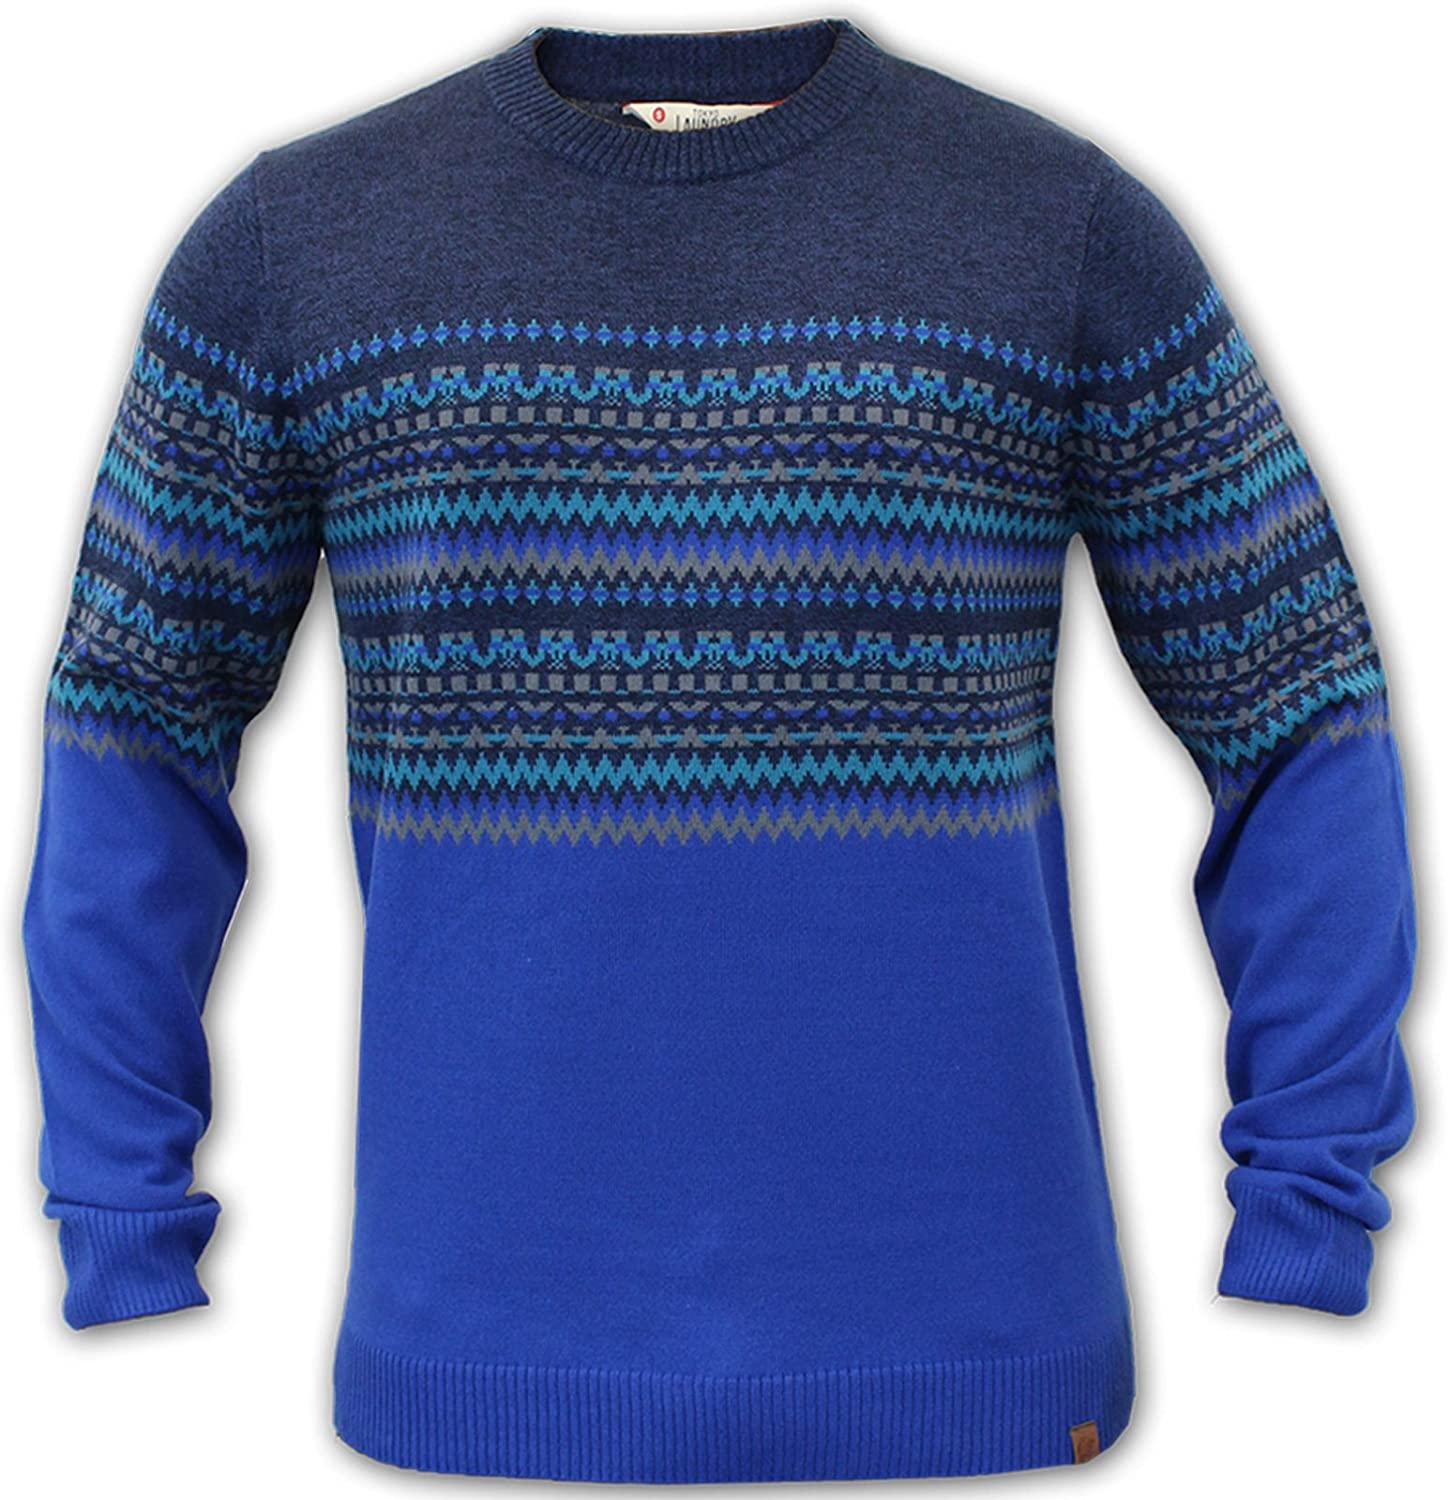 Tokyo Laundry Mens Knitted Jumper Top